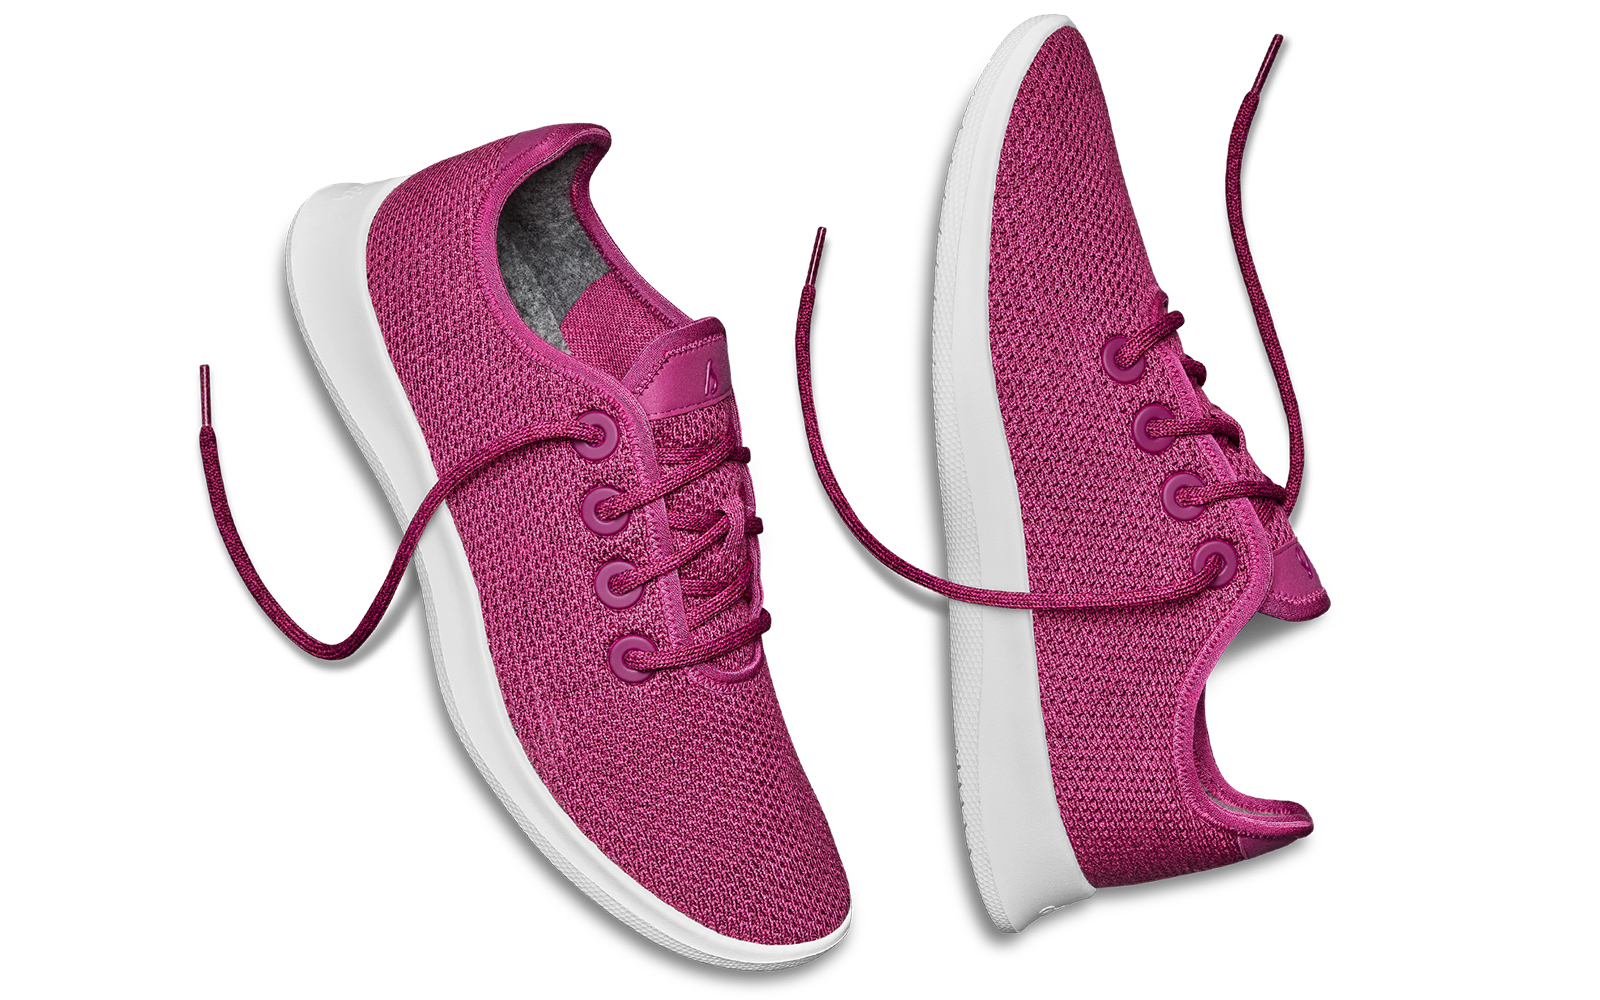 Women's Tree Runner Sneakers in in Tourmaline